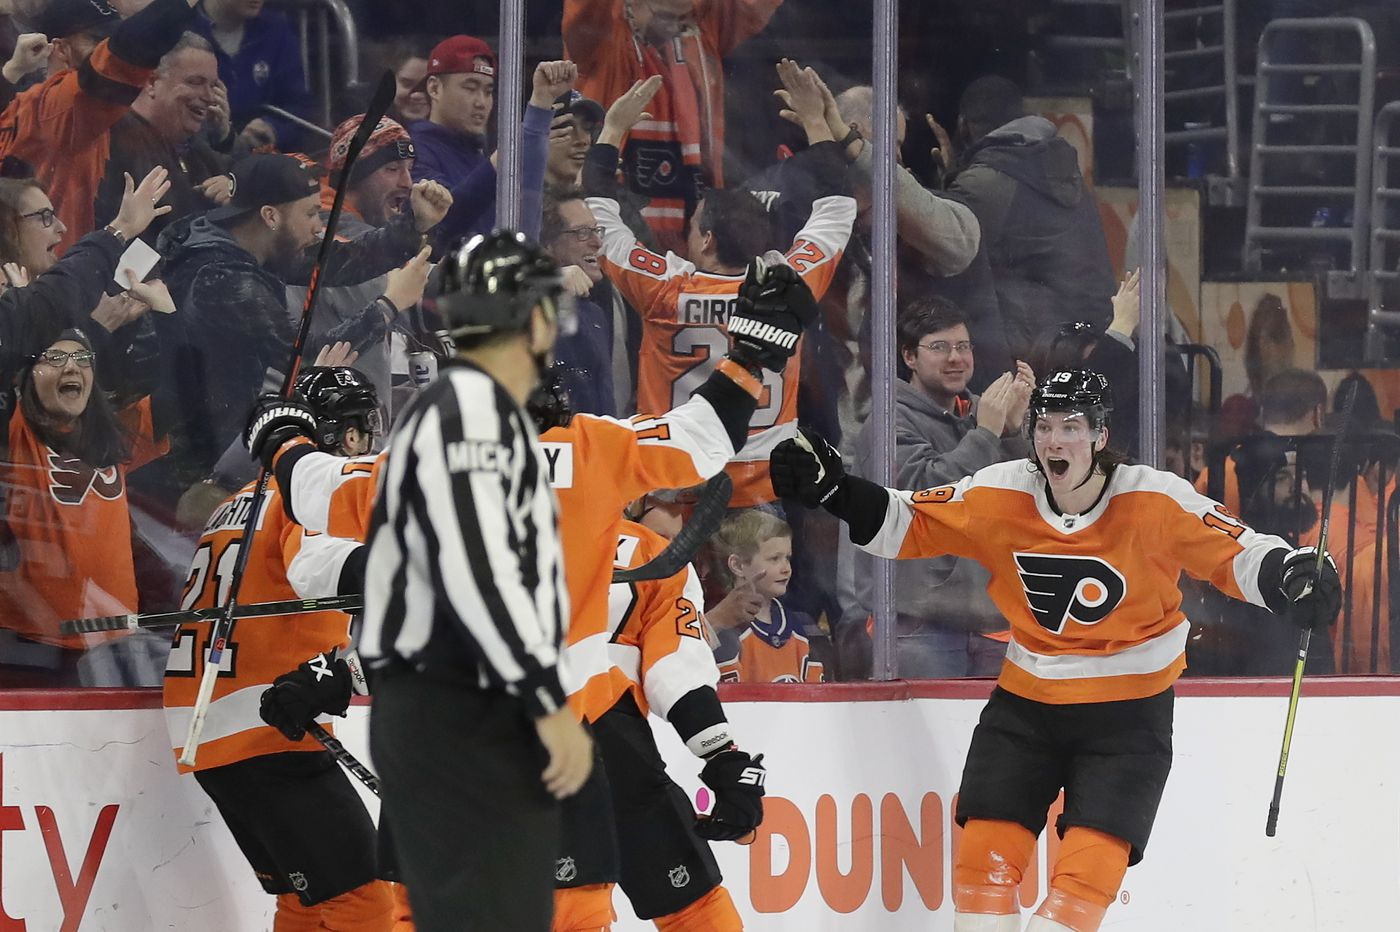 Flyers win seventh straight, beating Oilers in overtime on Nolan Patrick's goal